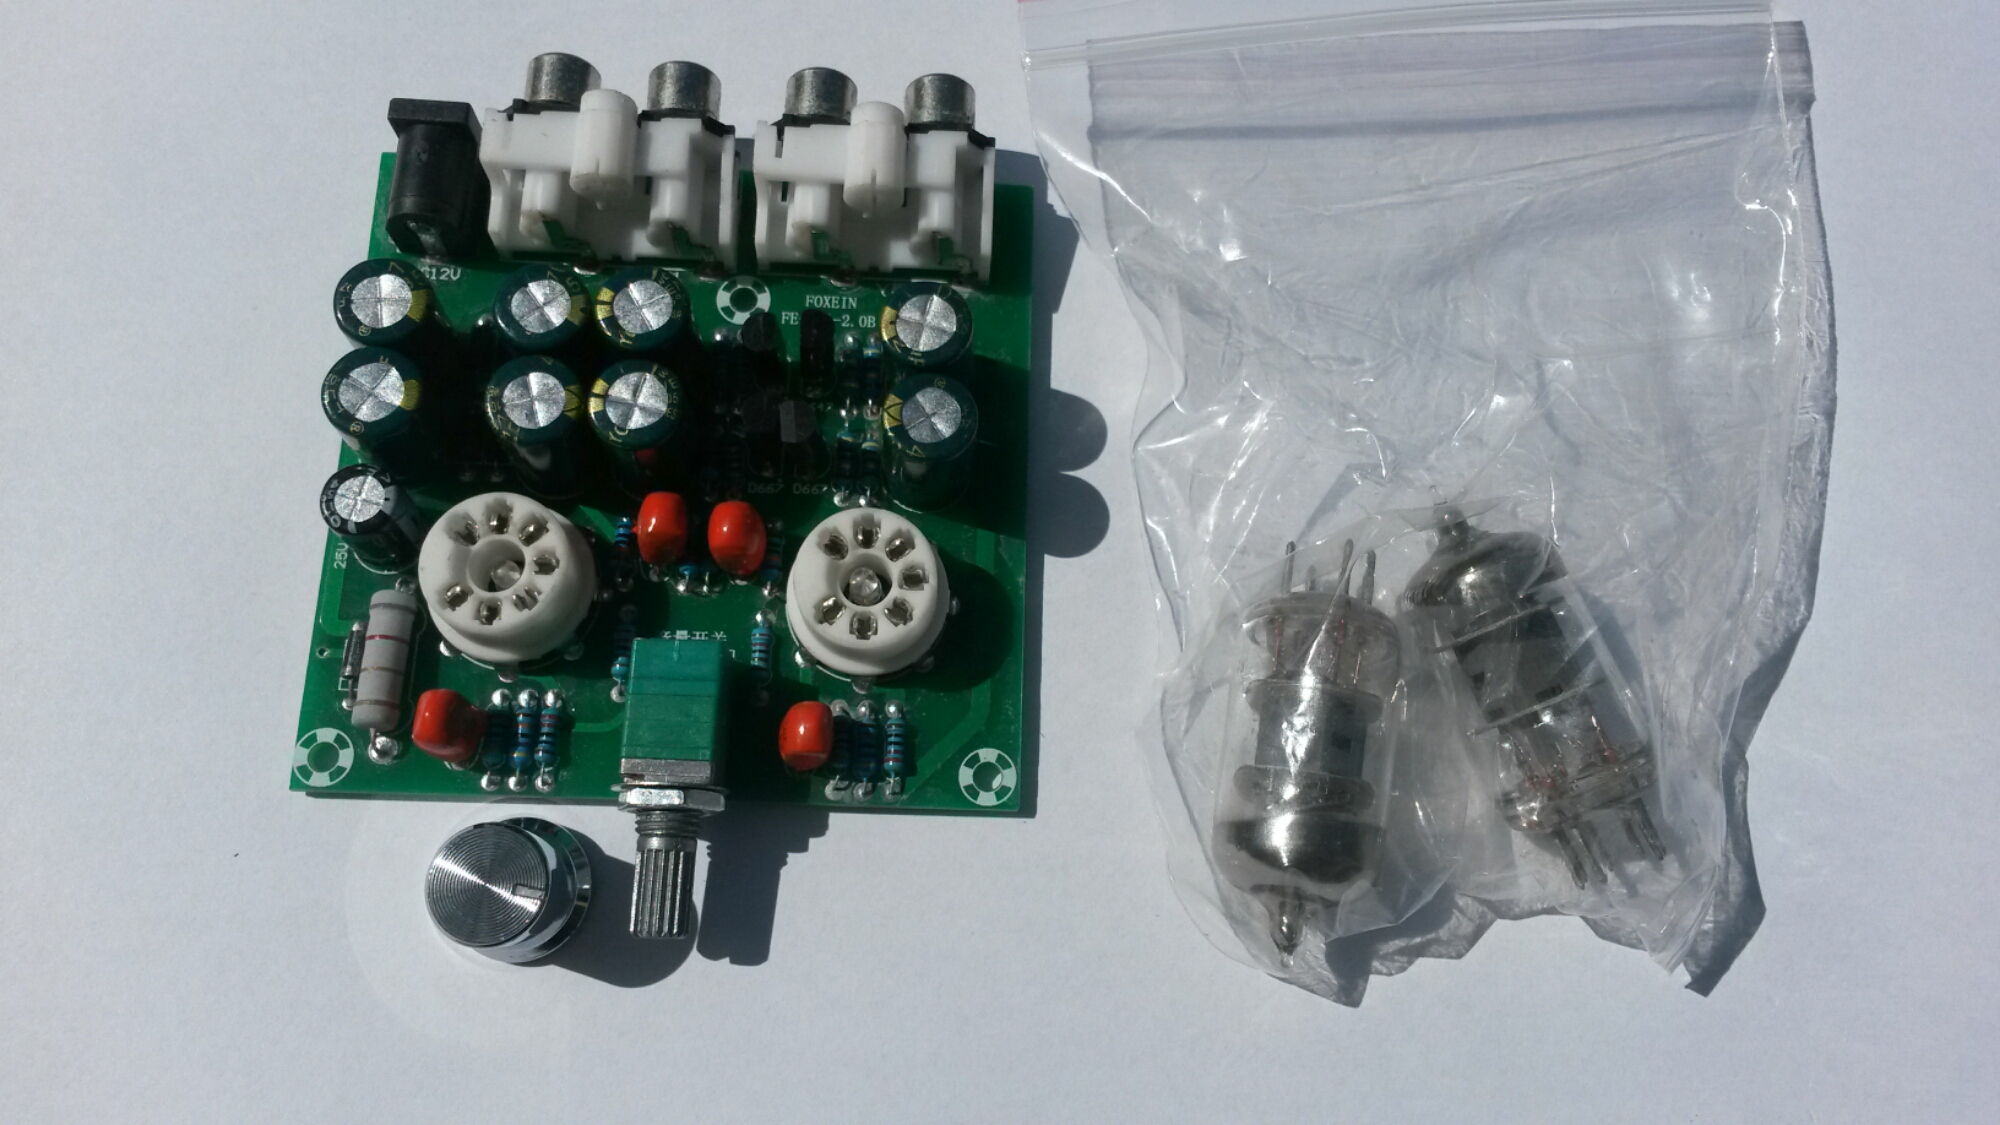 Tube Preamp Kit Fe 6j1 20b Module Volume Control Amplifier Headphone Board Diy There Seem To Be Some Small Leds In The Center Of Sockers Those Are Blue That Make Tubes Glow Color